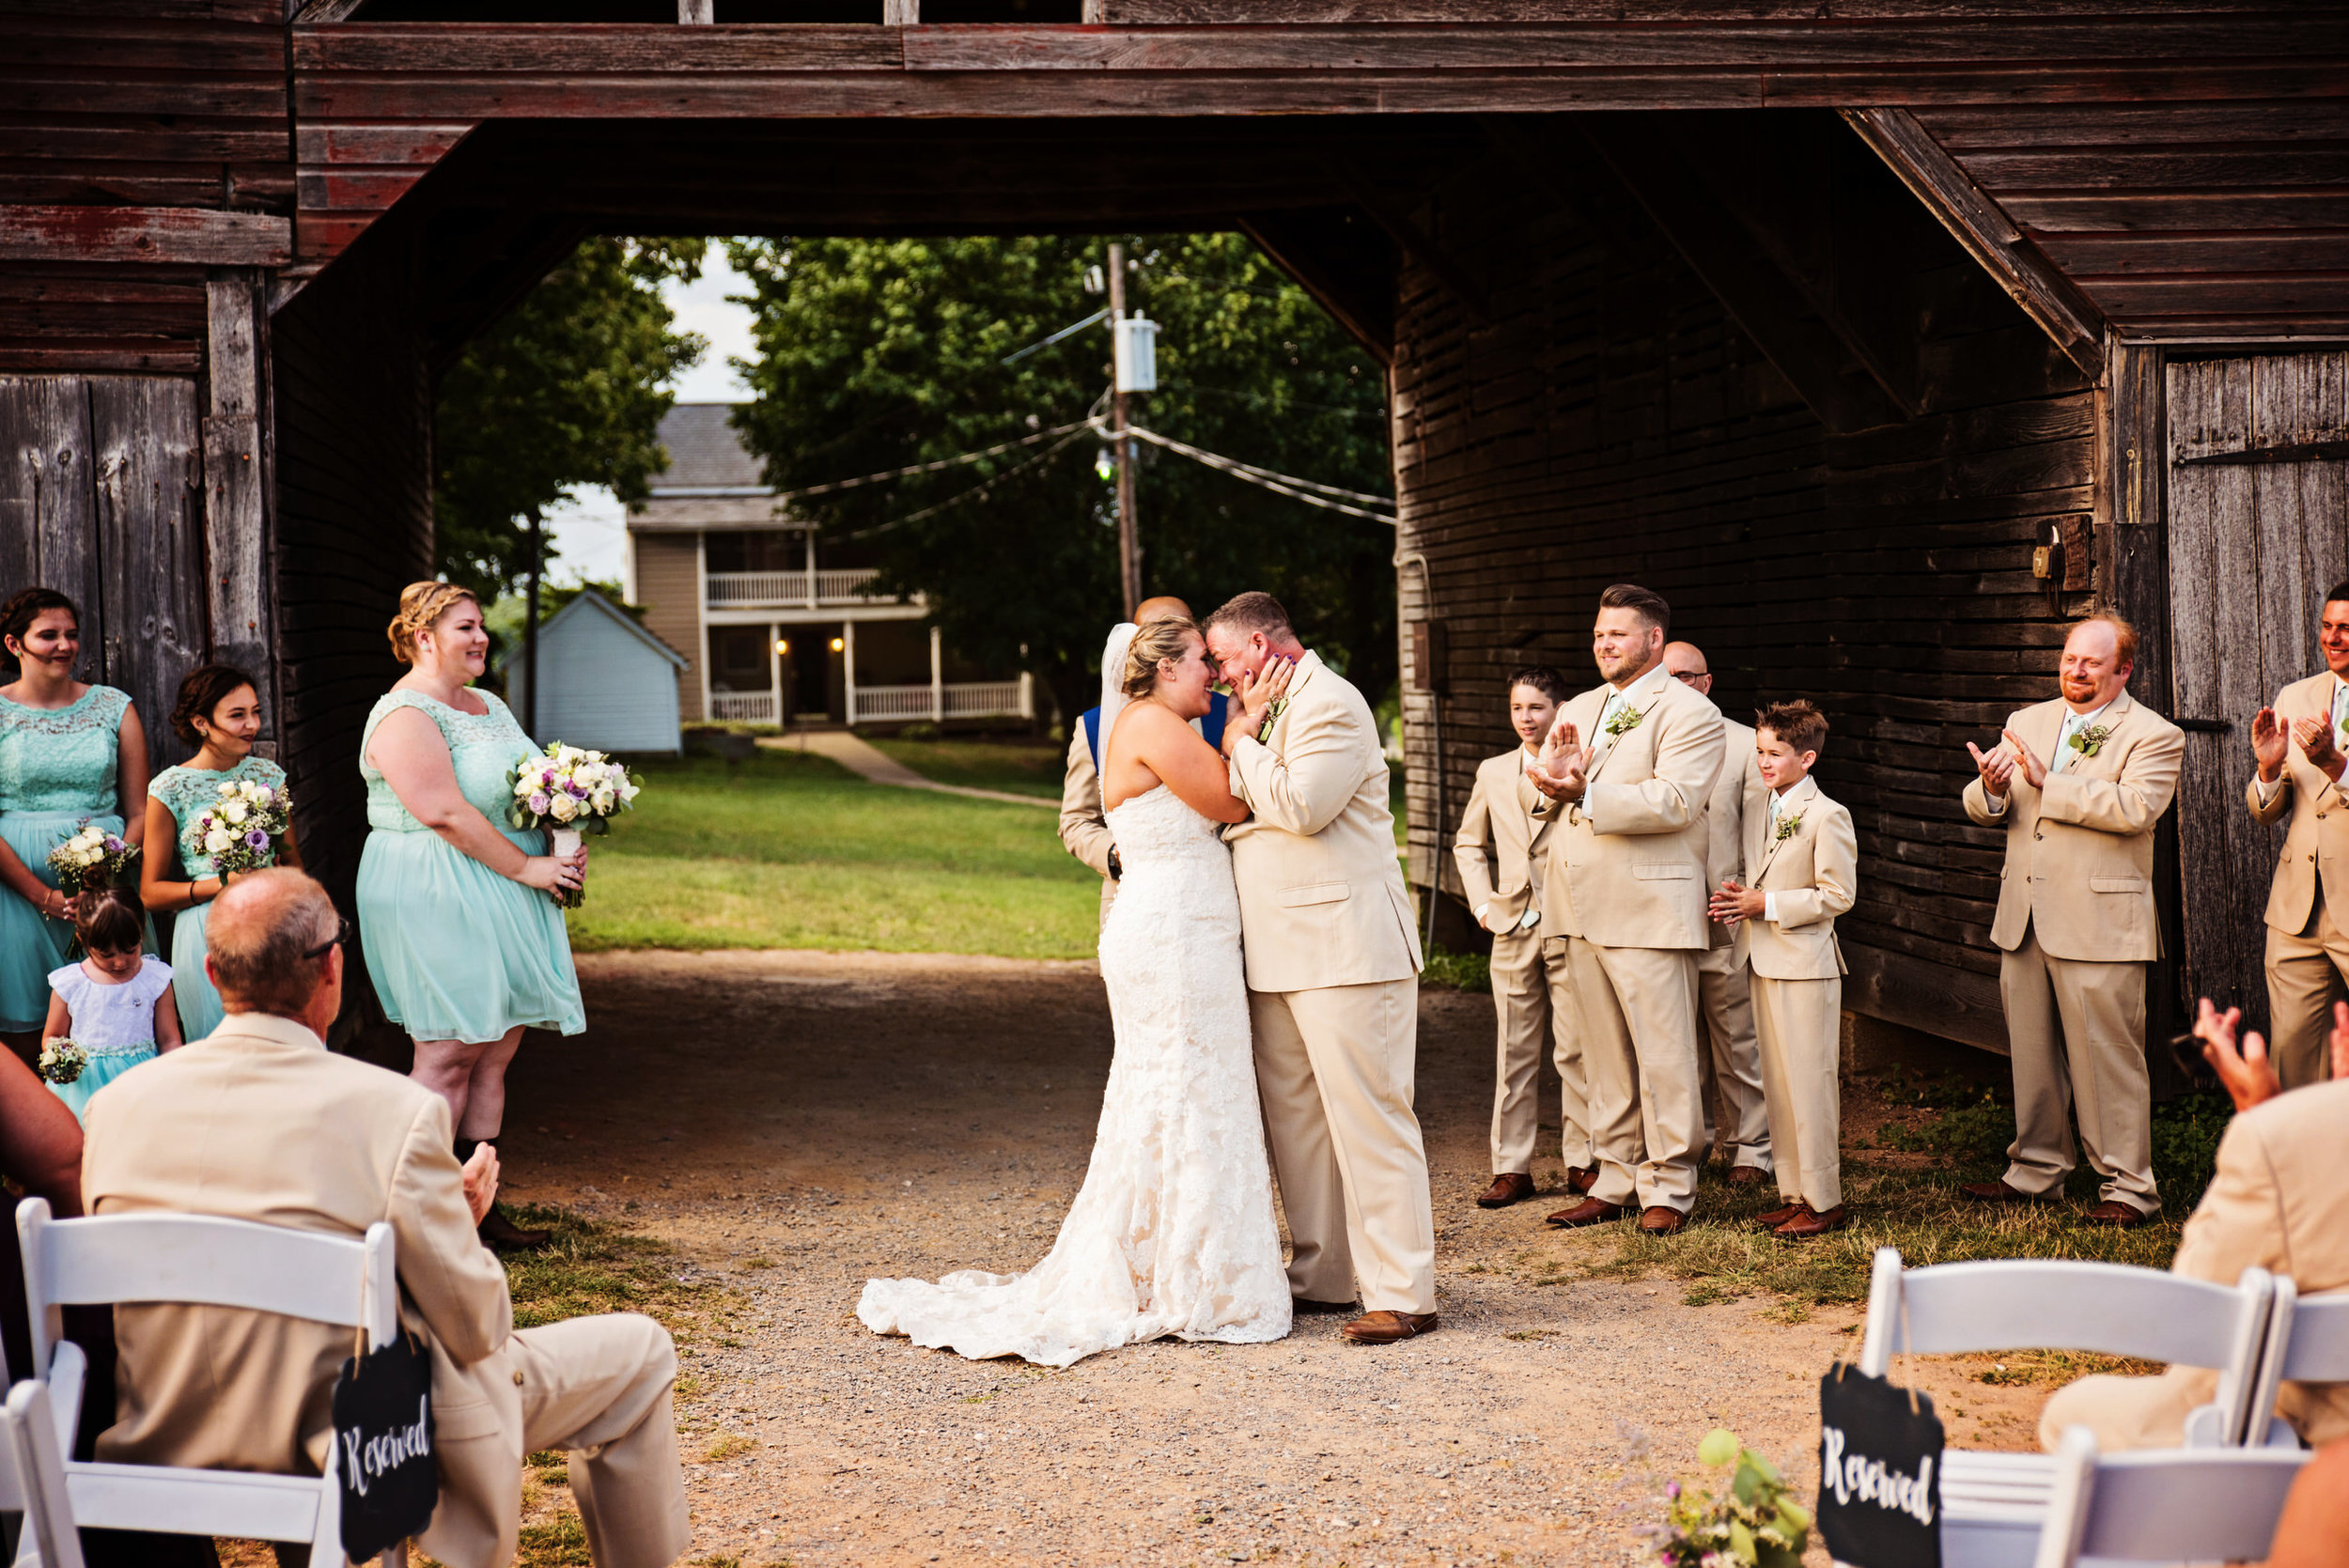 LiganoreWineryWedding-Amber&Andy-Ceremony-126.jpg